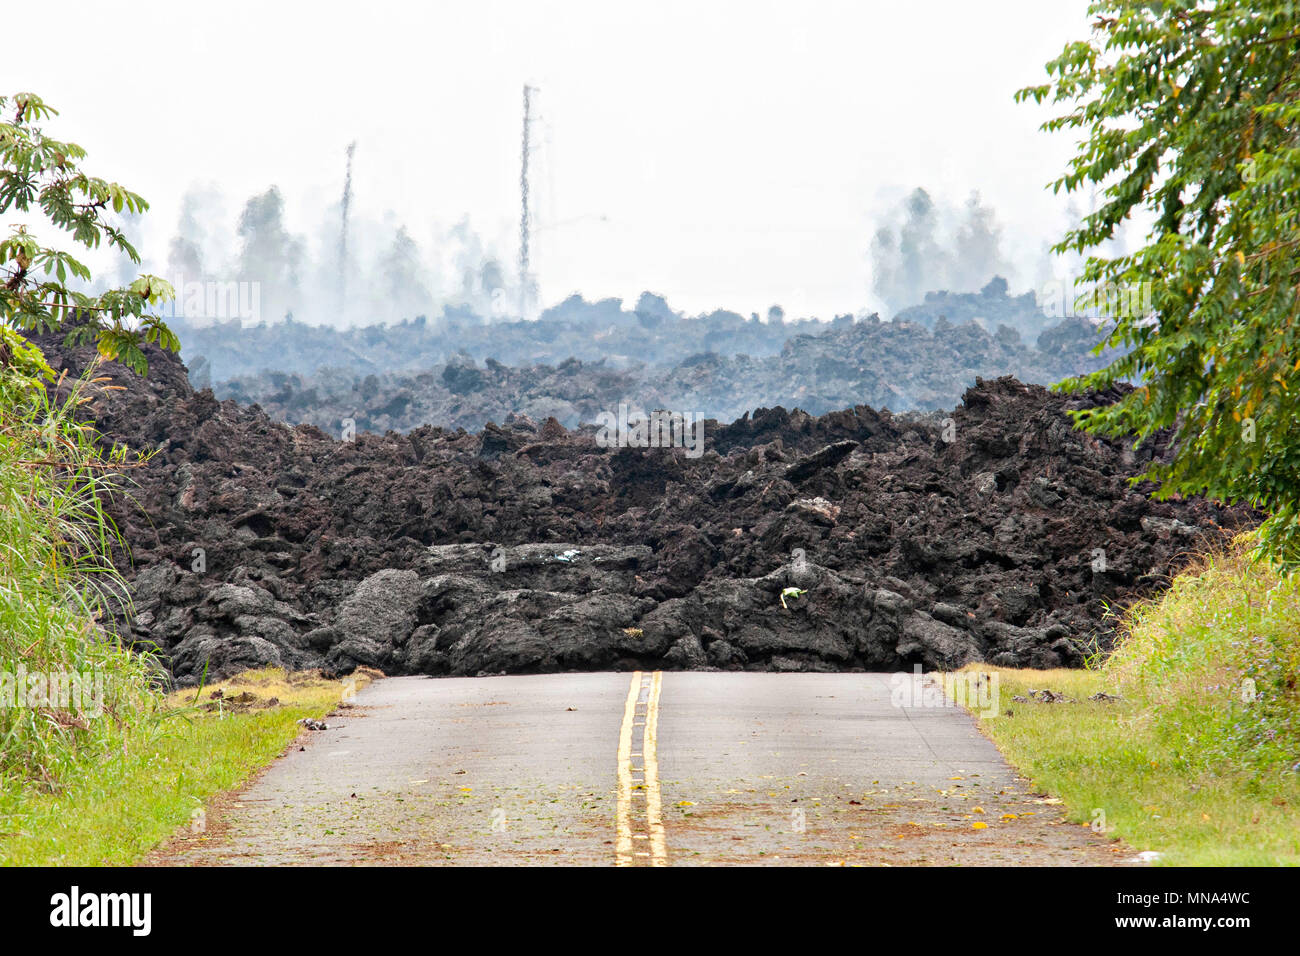 A lava roadblock covers a residential road caused by the Kilauea volcano eruption at Leilani Estates May 12, 2018 in Pahoa, Hawaii. The recent eruption continues destroying homes, forcing evacuations and spewing lava and poison gas on the Big Island of Hawaii. Stock Photo